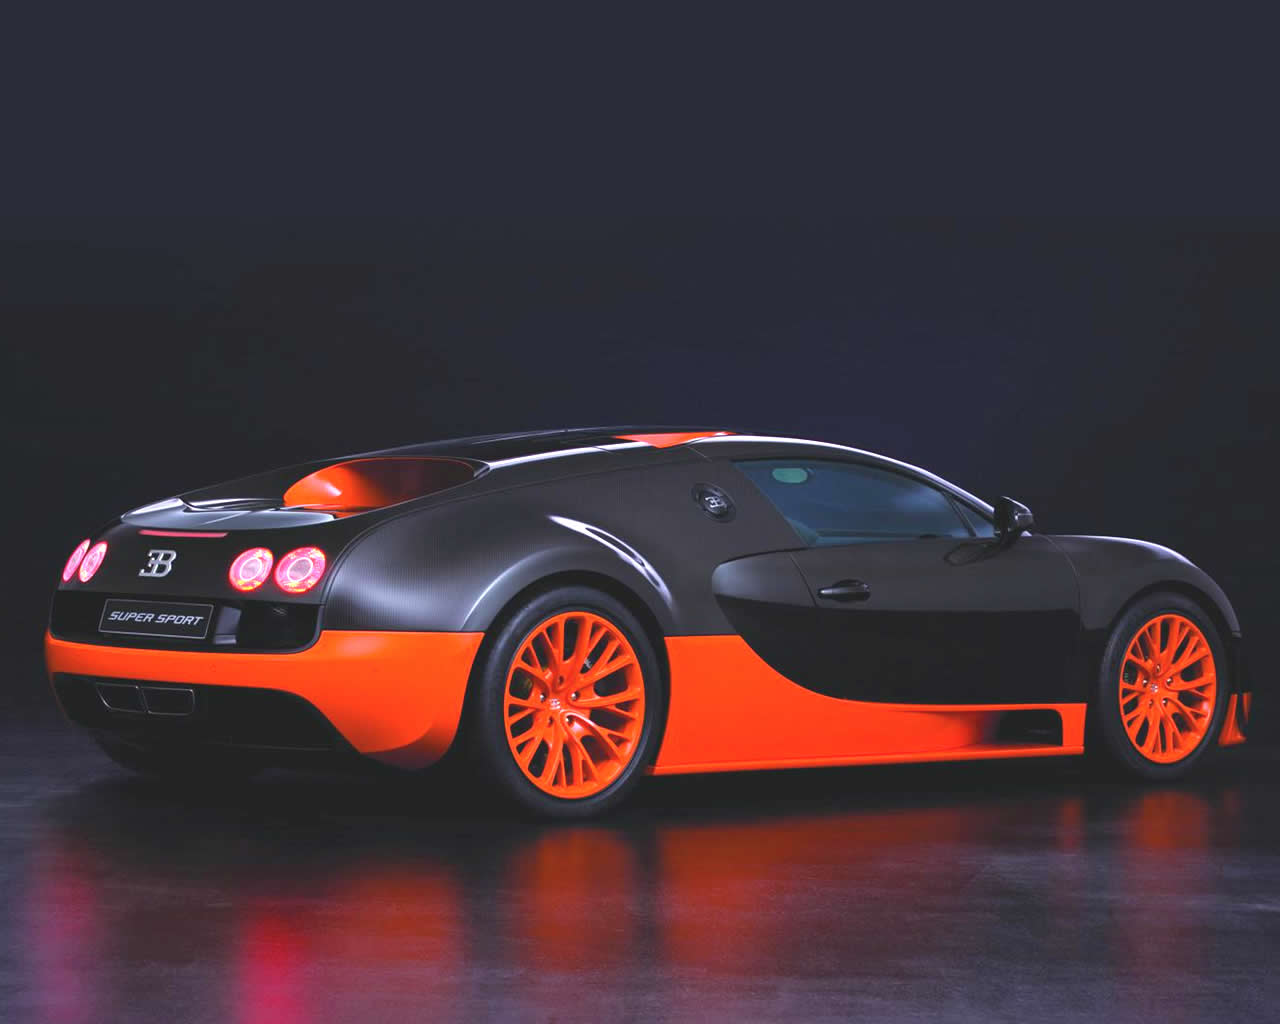 car au bugatti veyron 2011 motor 16 4 used and new cars from australia car company and best. Black Bedroom Furniture Sets. Home Design Ideas